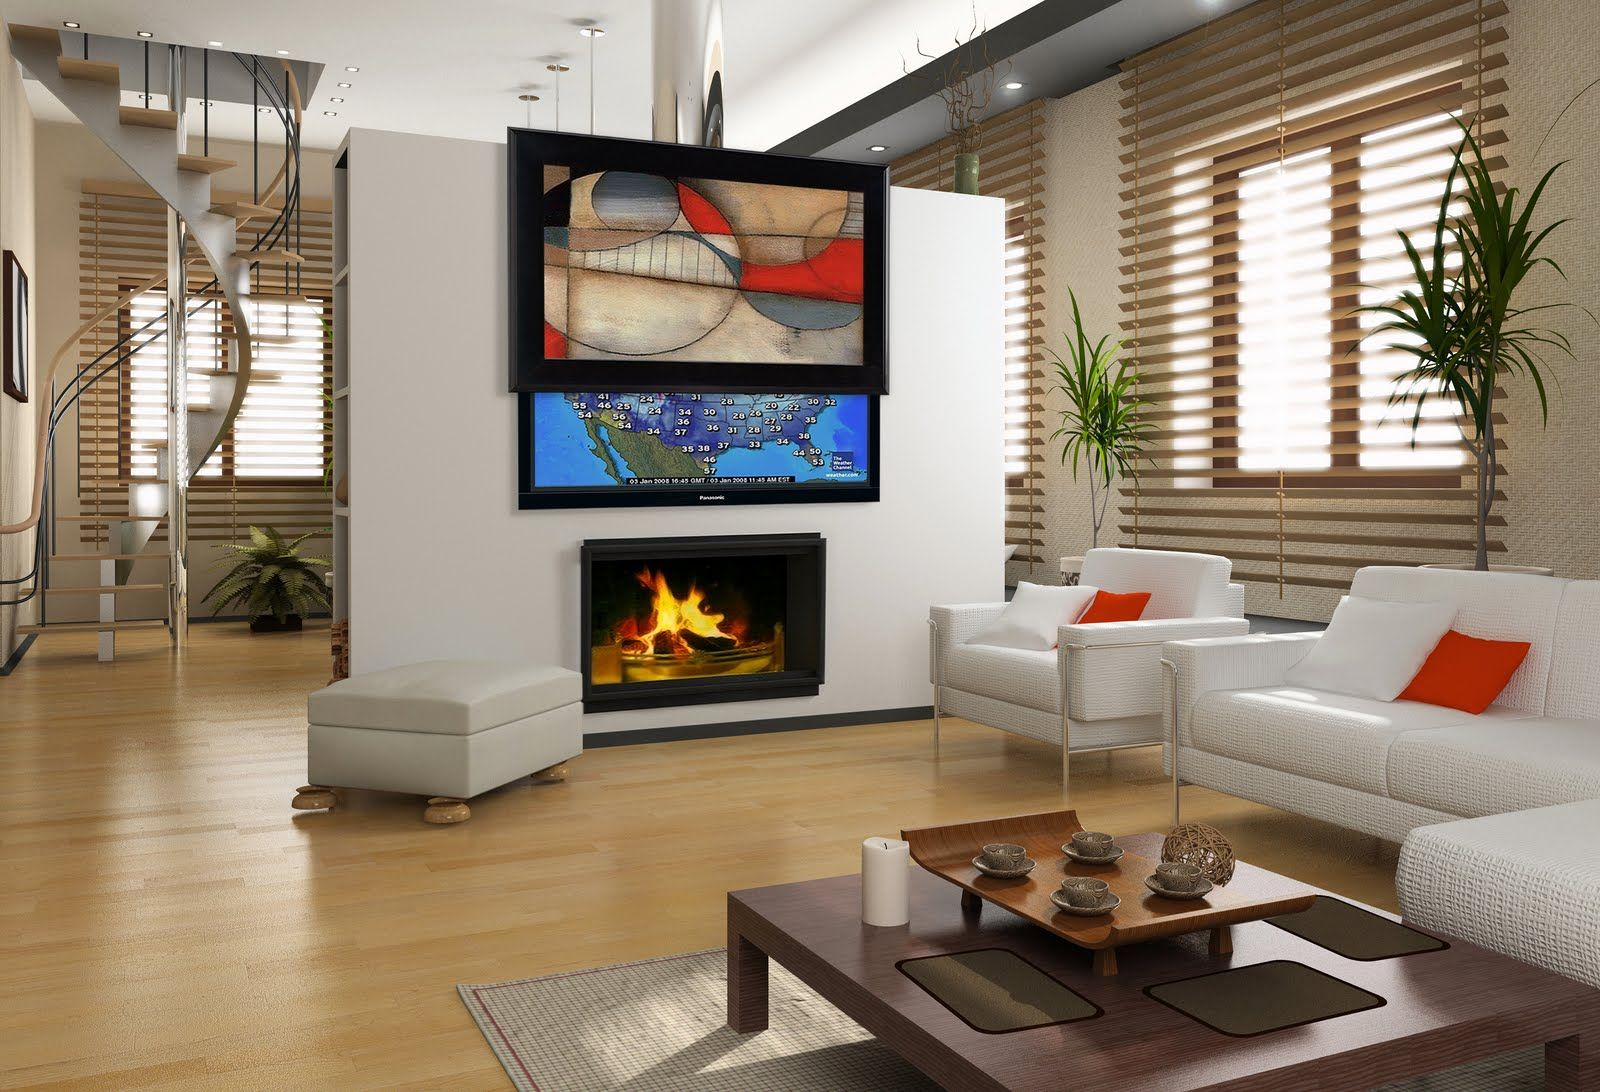 Dazzling Living Room Decorated With White Wall Paint Color And Mounted TV LCD L